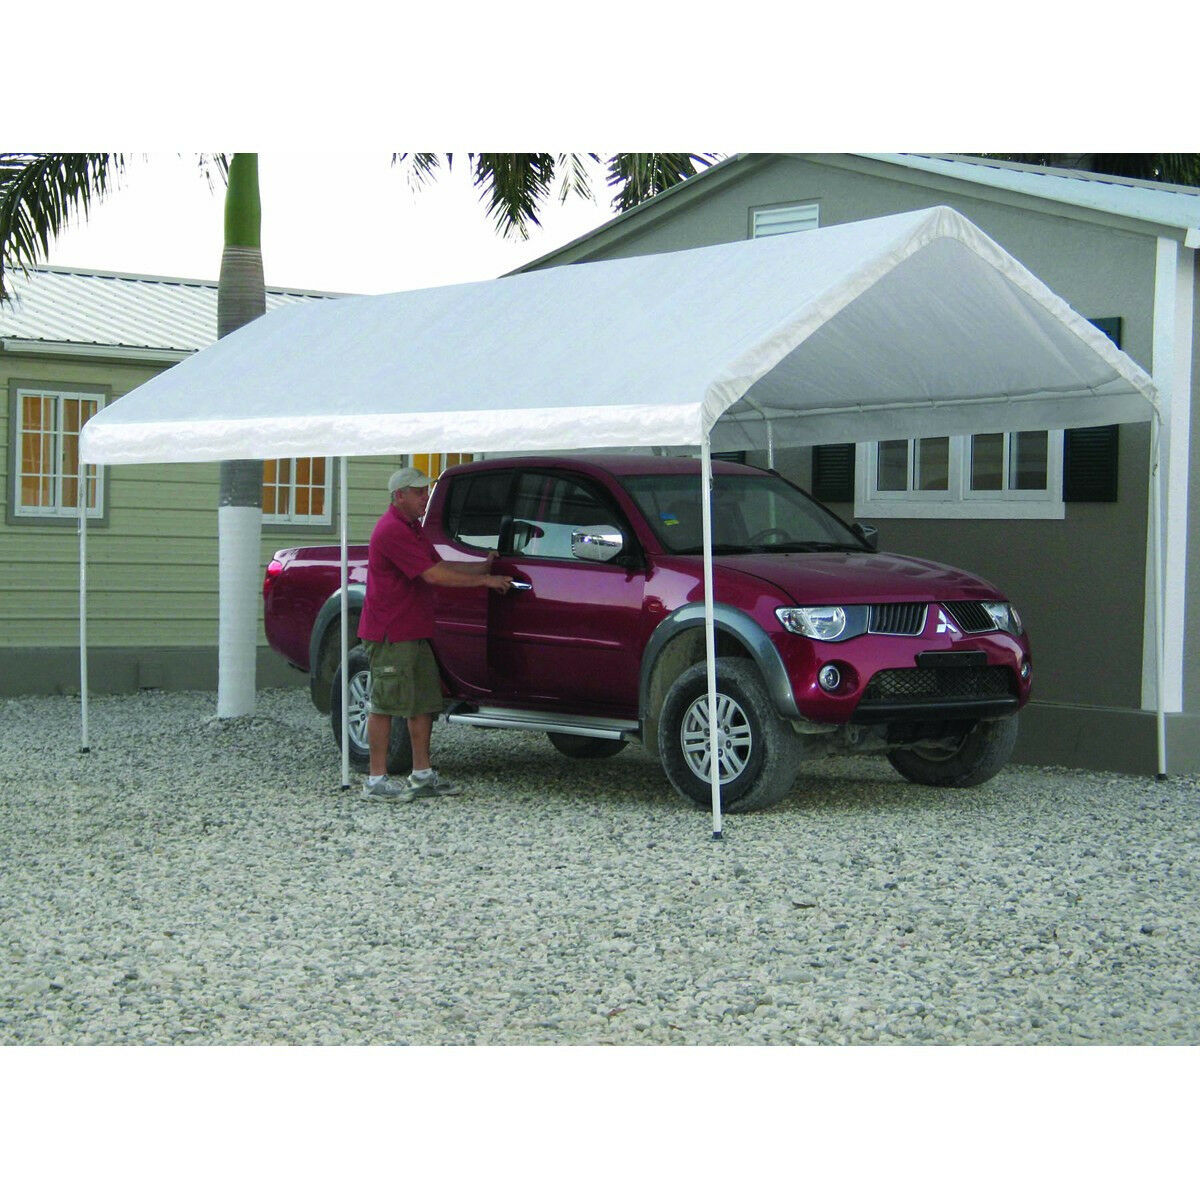 Metal Car Shelter 10x20 : Shed plans tent guide